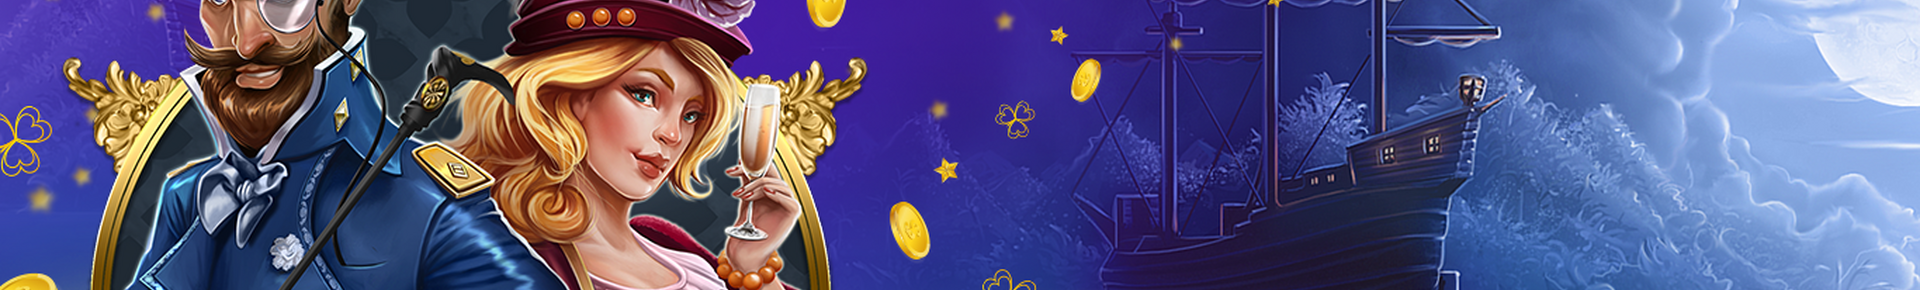 Playluck casino review UK